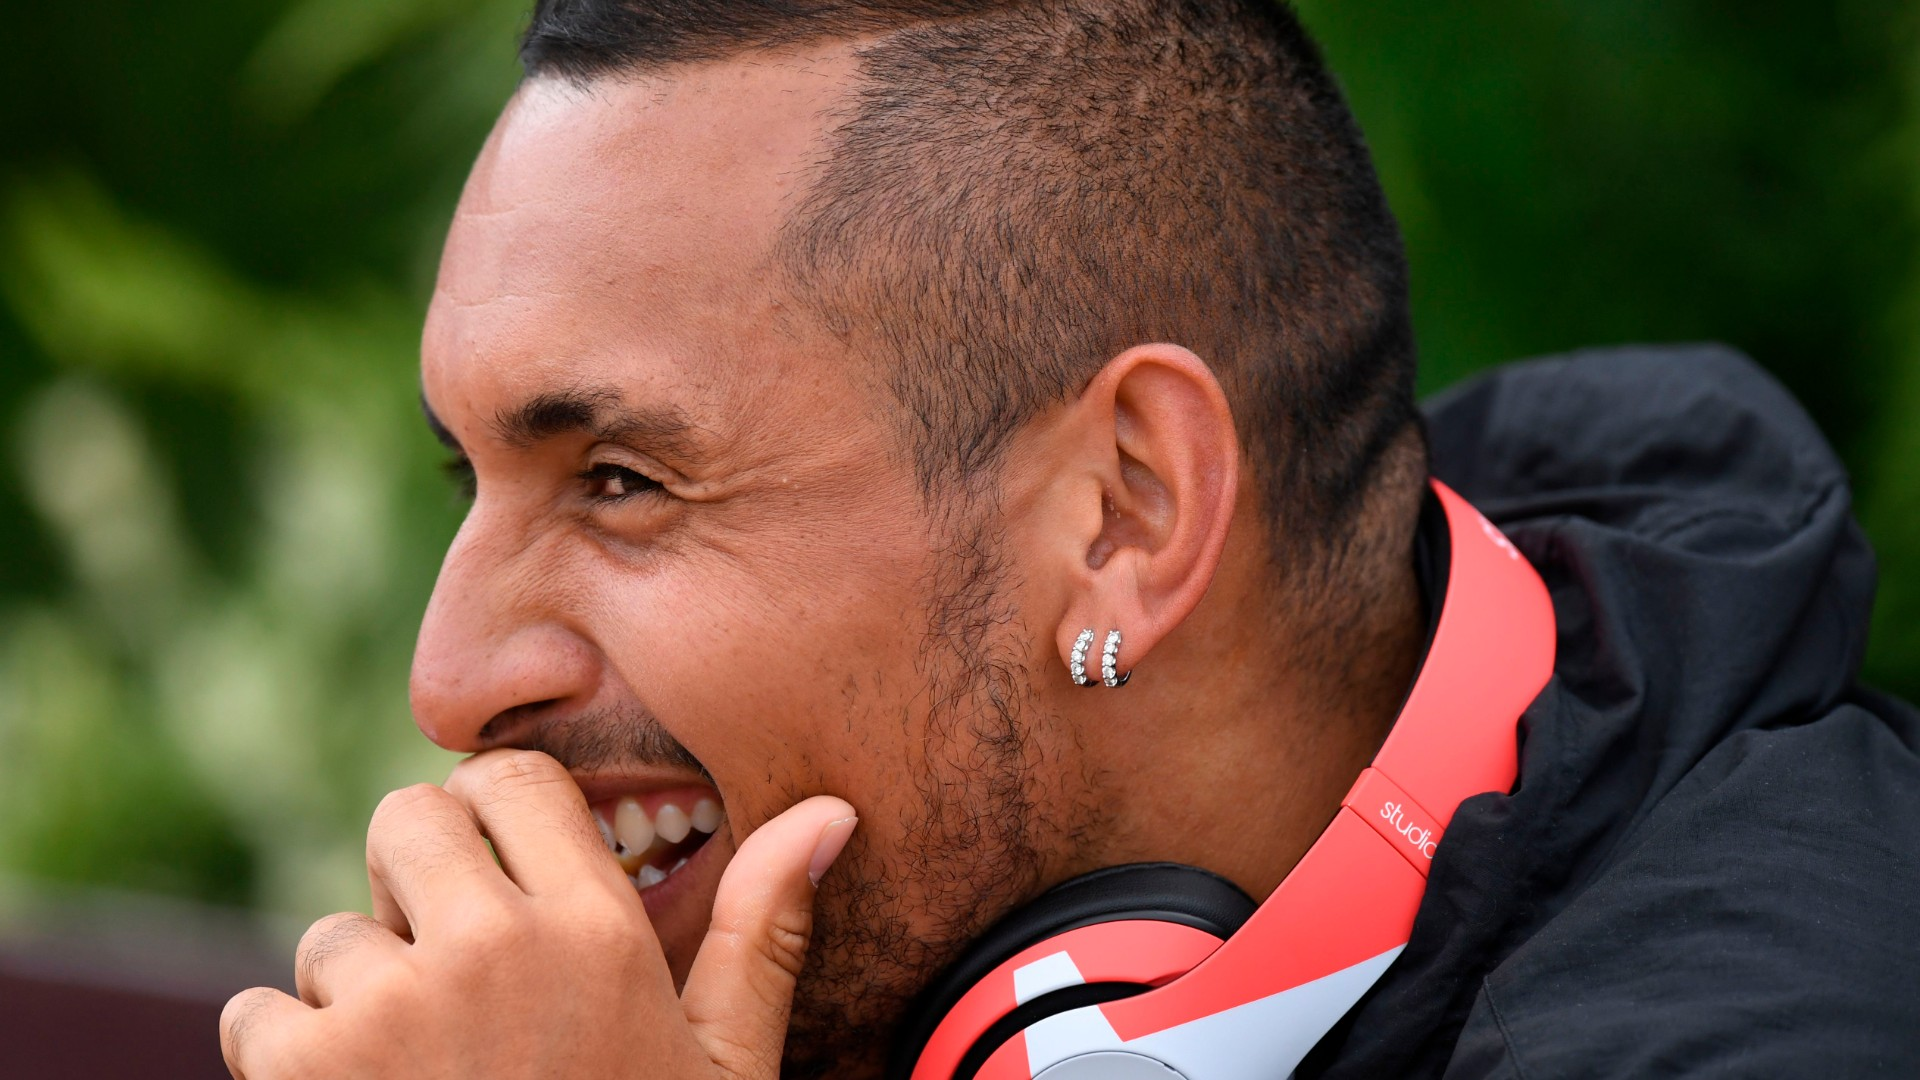 Wimbledon 2019: Nick Kyrgios spotted at the pub ahead of Rafael Nadal showdown